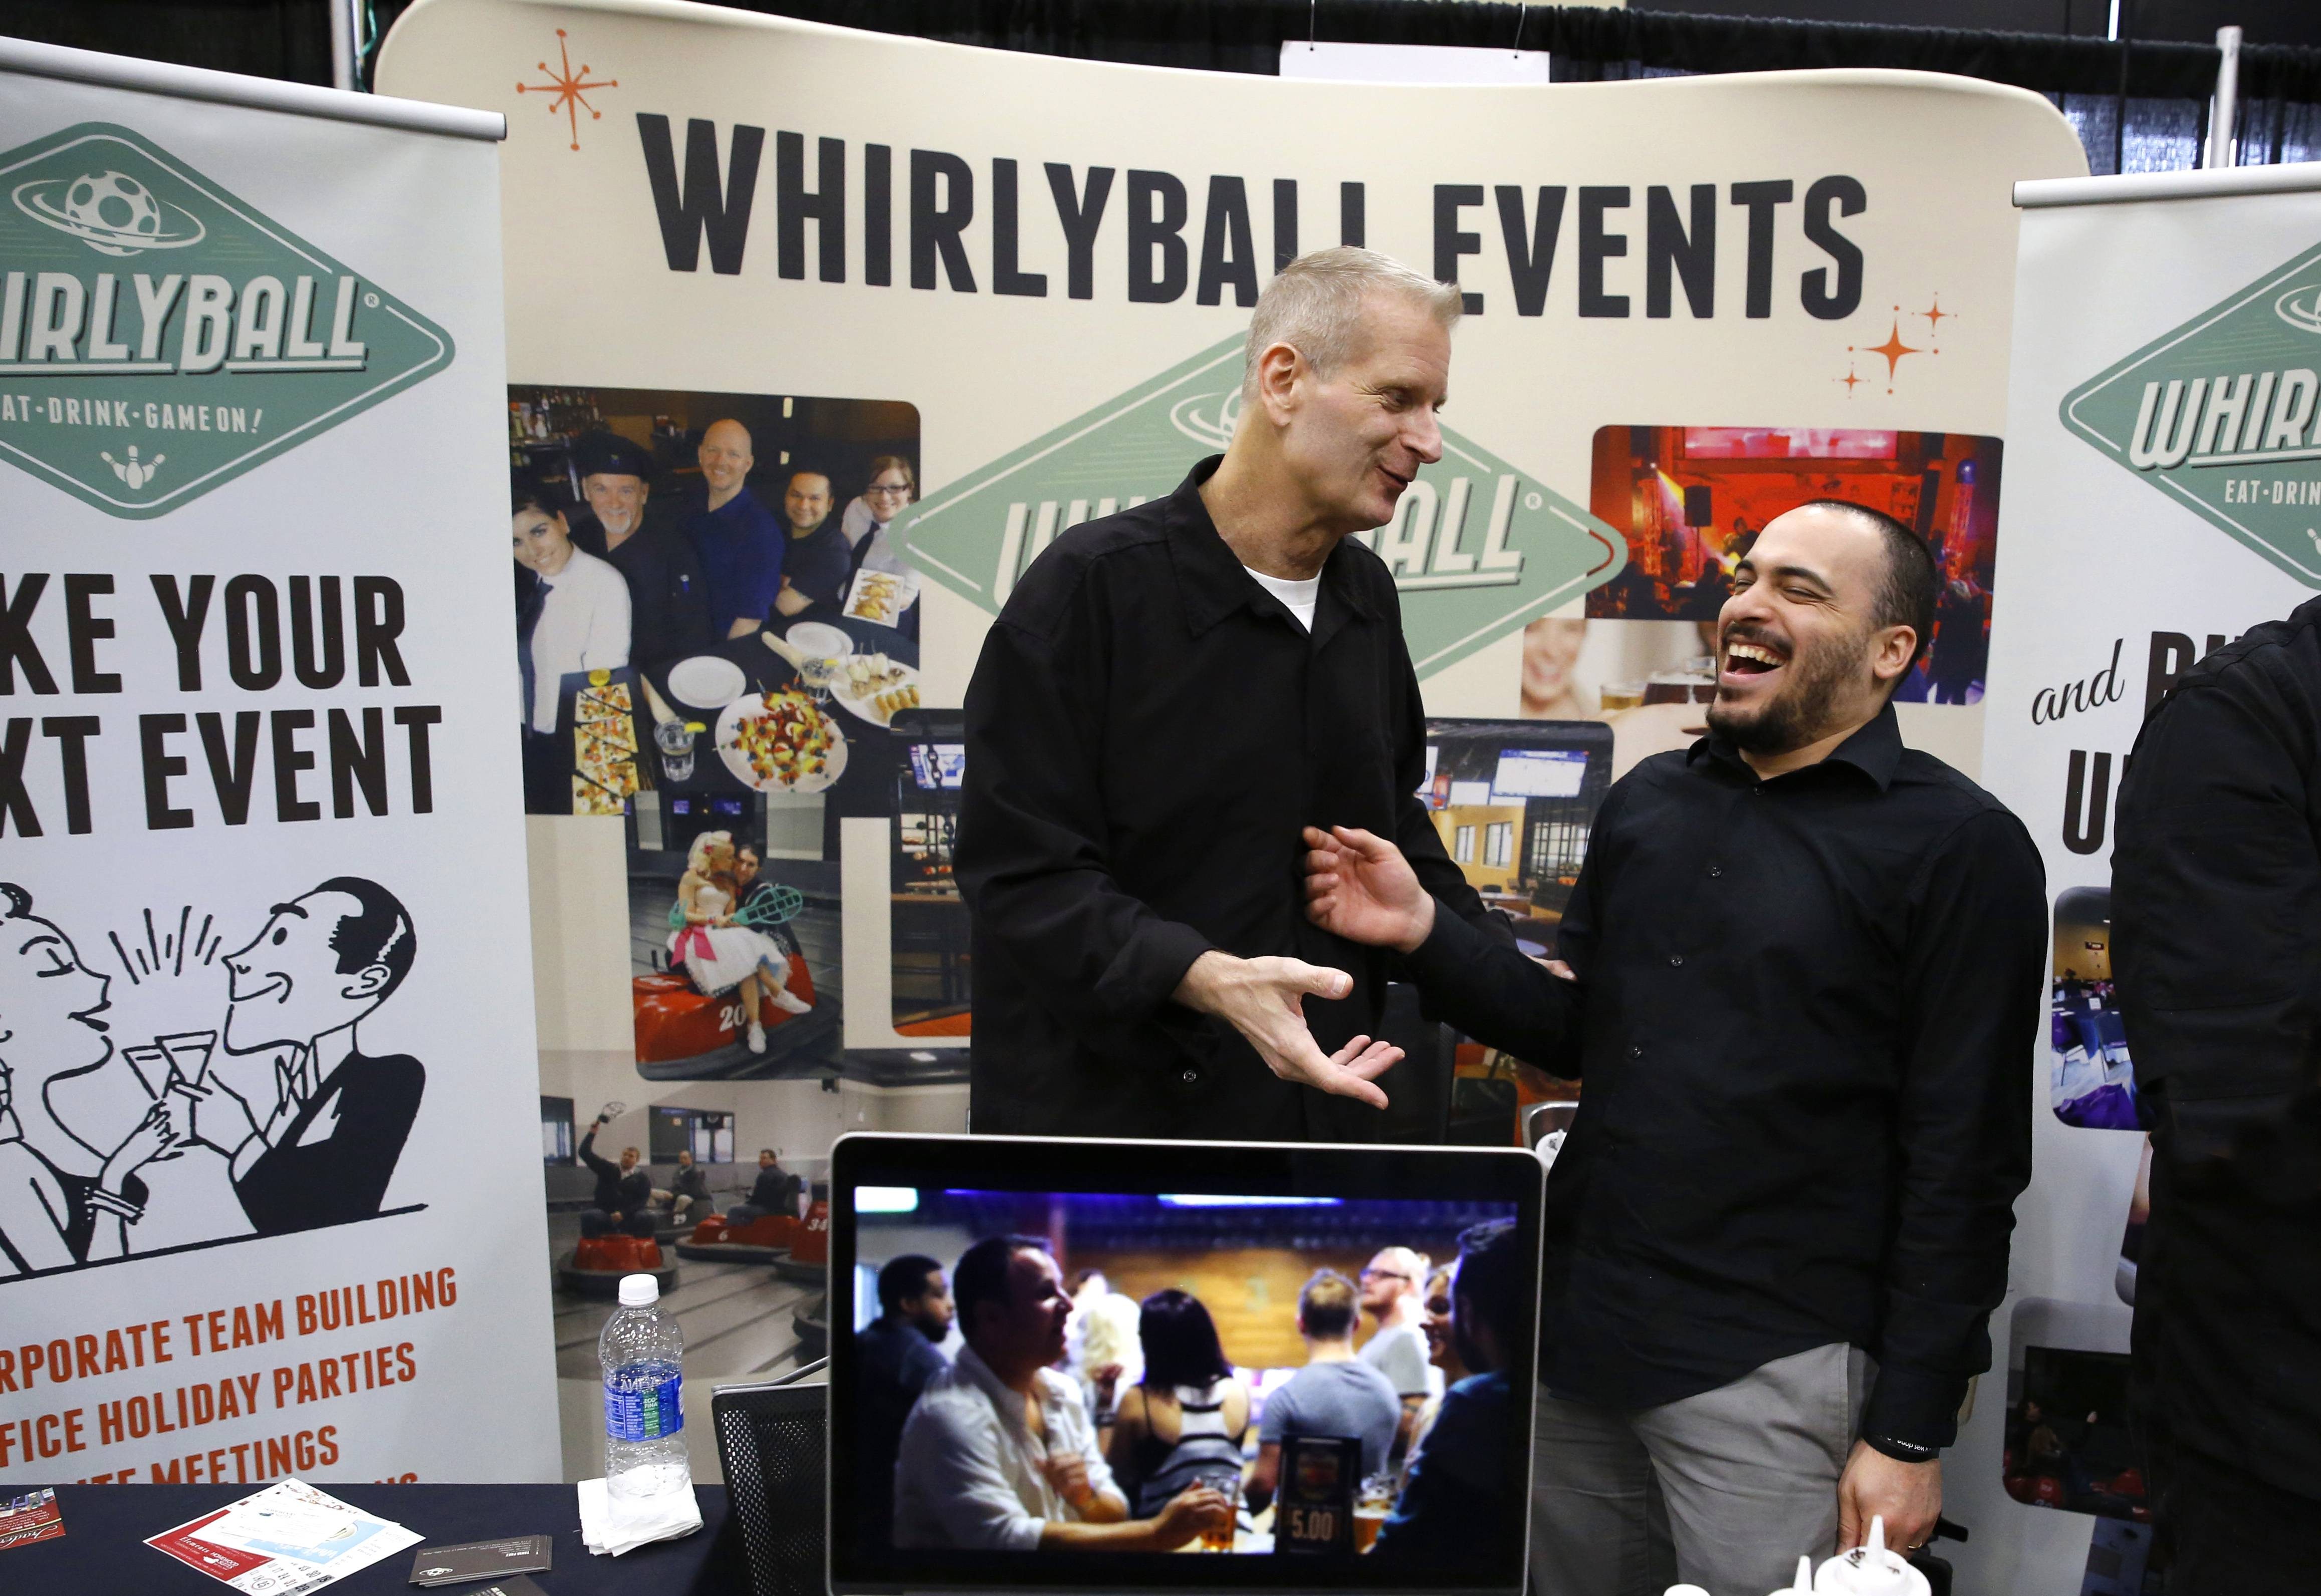 DanielWhite/dwhite@dailyherald.comJohn Krol, left, and Joel Alvarado, right, of Whirlyball maintained a booth during the BizLedger Hospitality Expo at the Tinley Park Convention Center.